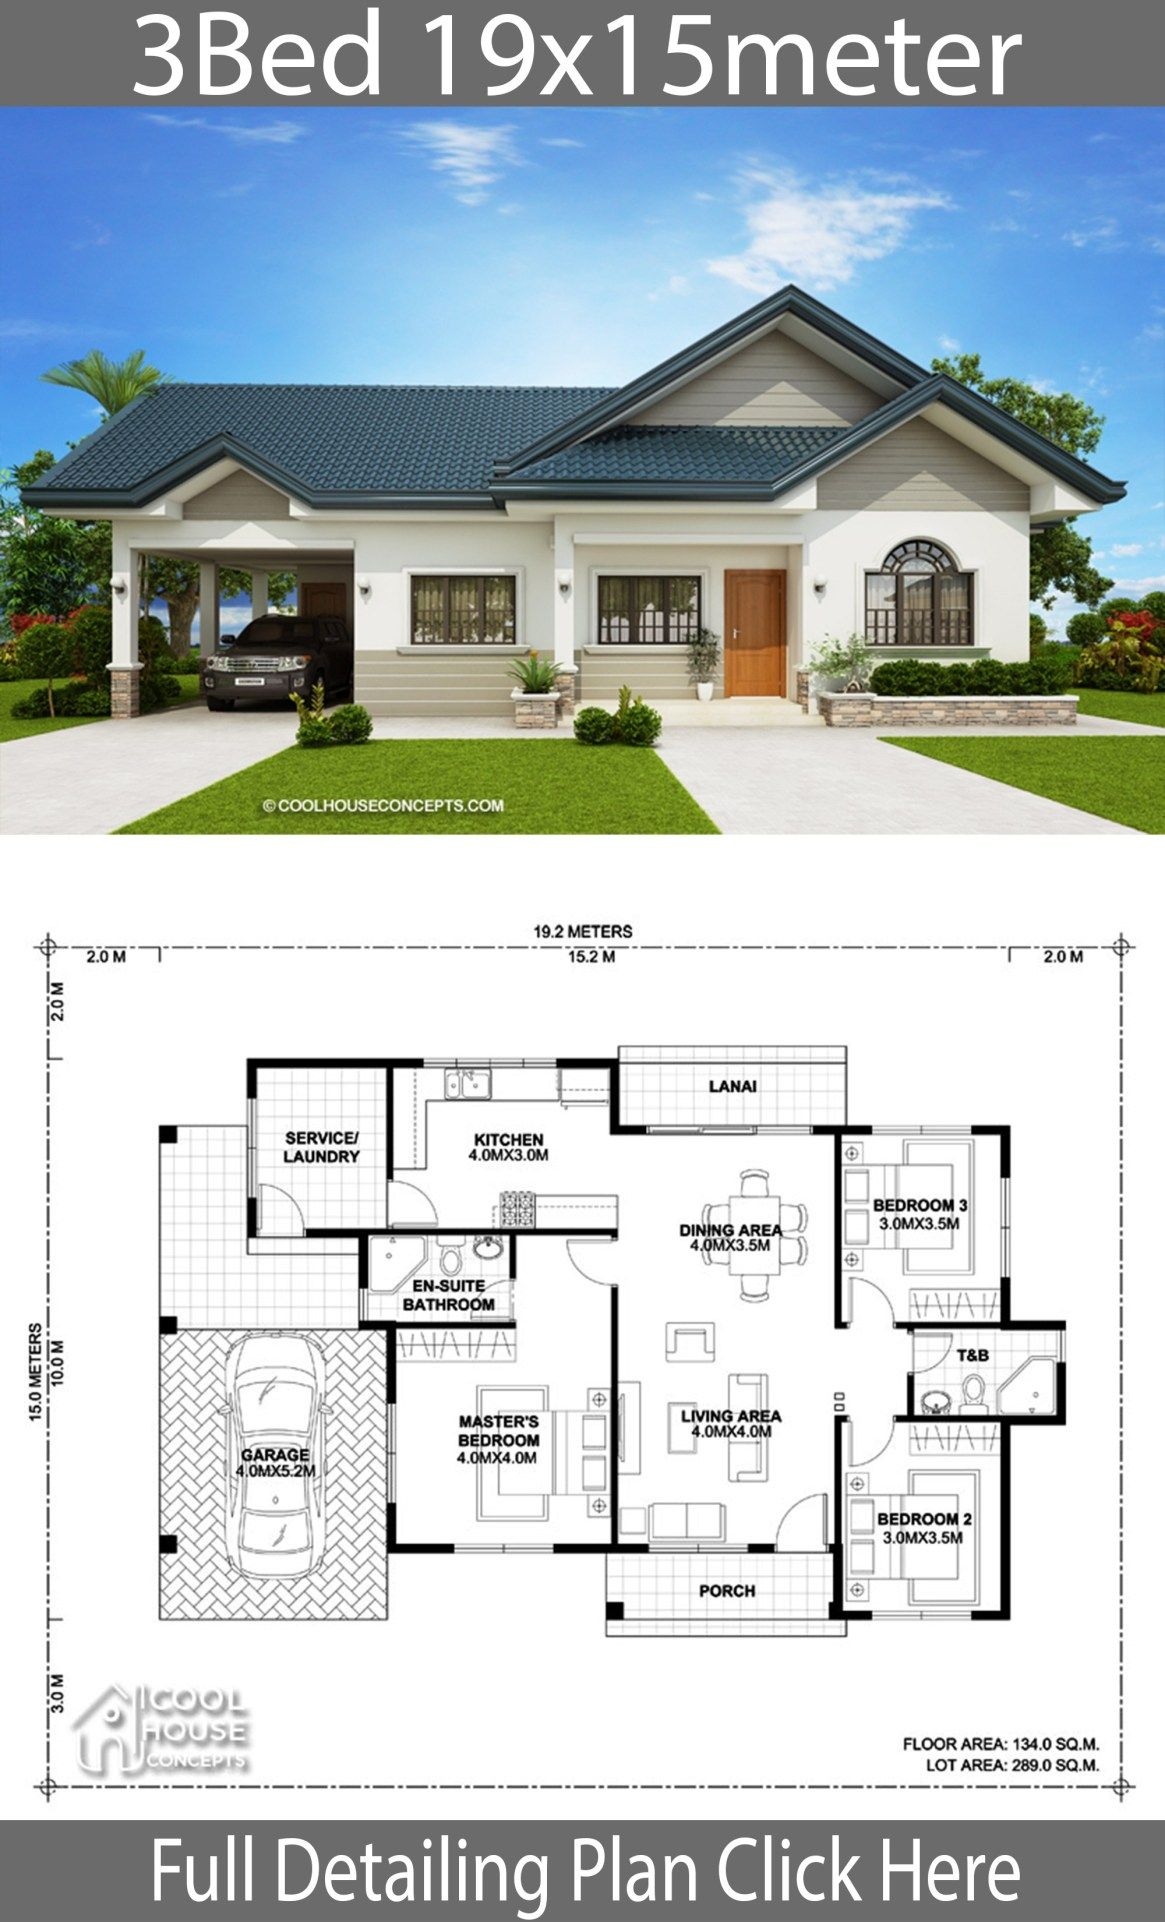 Home Design Plan 19x15m With 3 Bedrooms Home Design With Plansearch House Plan Gallery Bungalow House Design Affordable House Plans